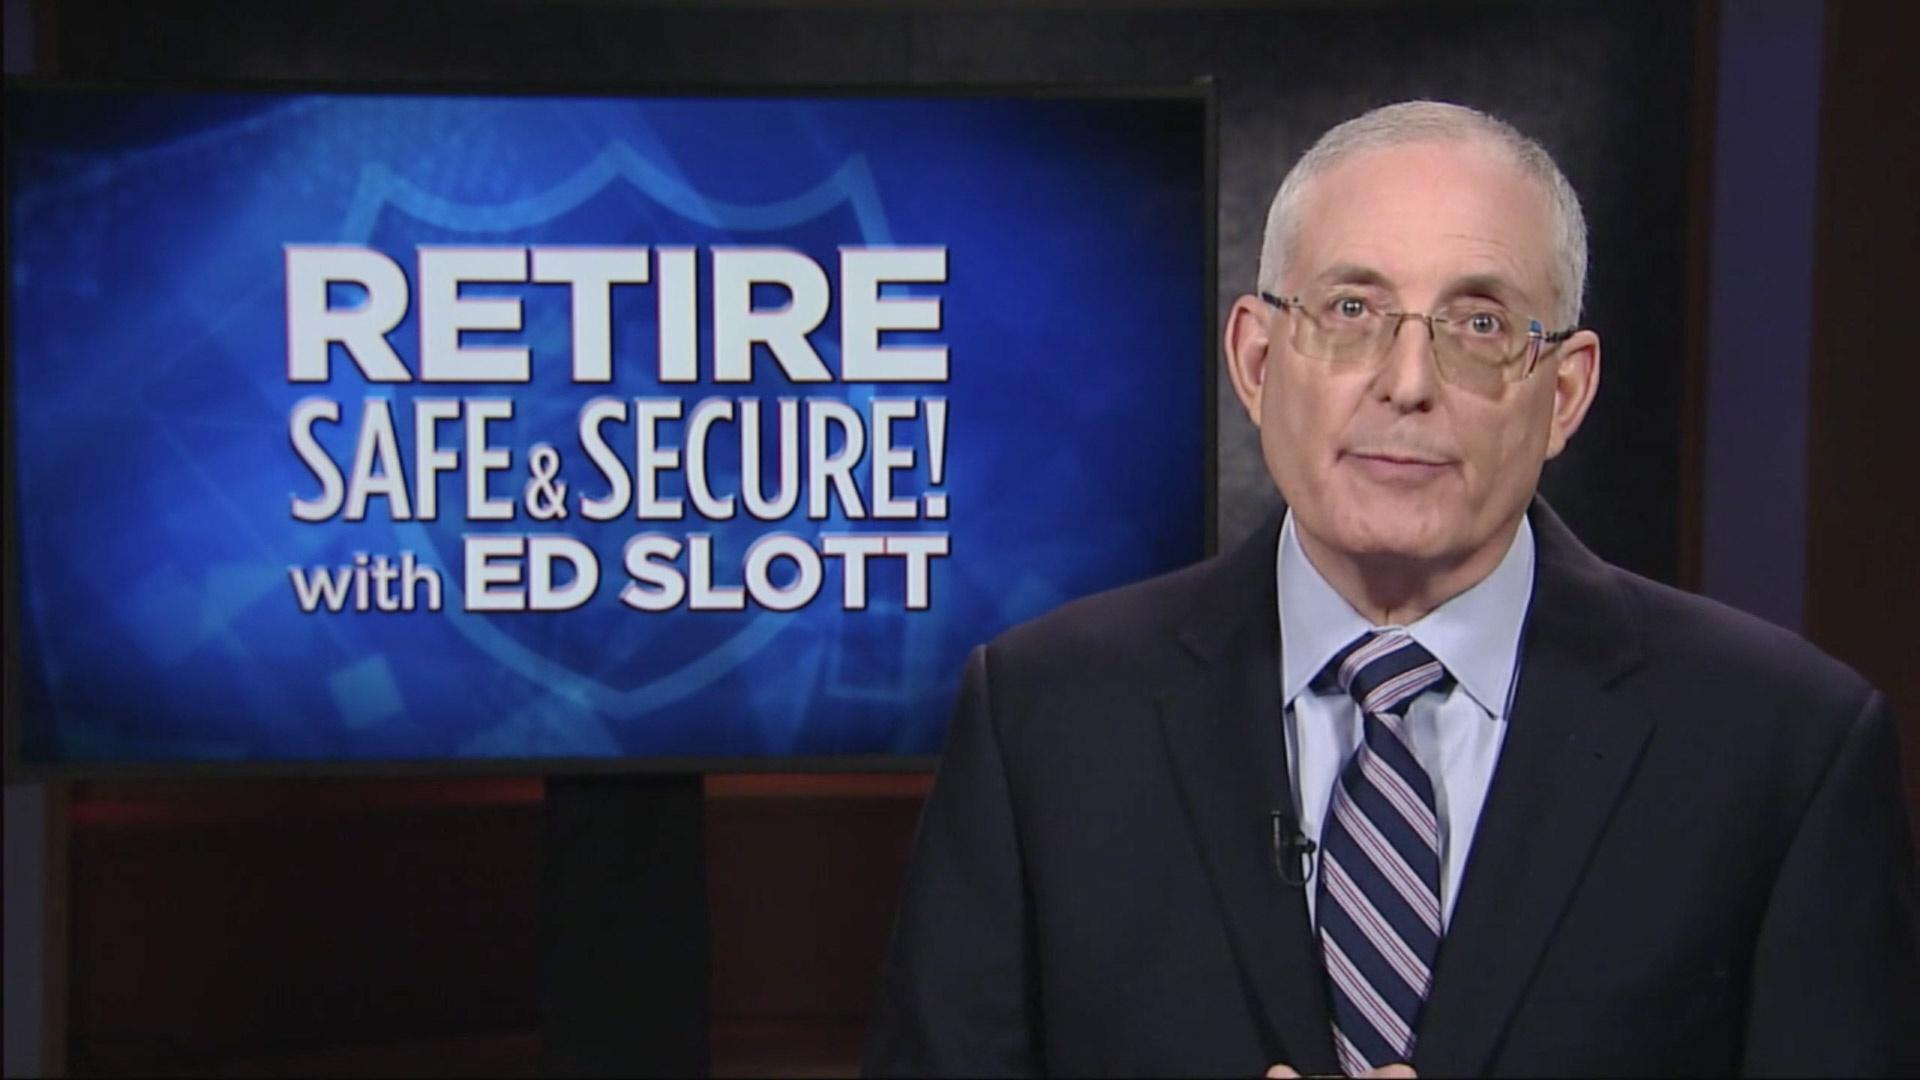 Retire Safe & Secure! with Ed Slott